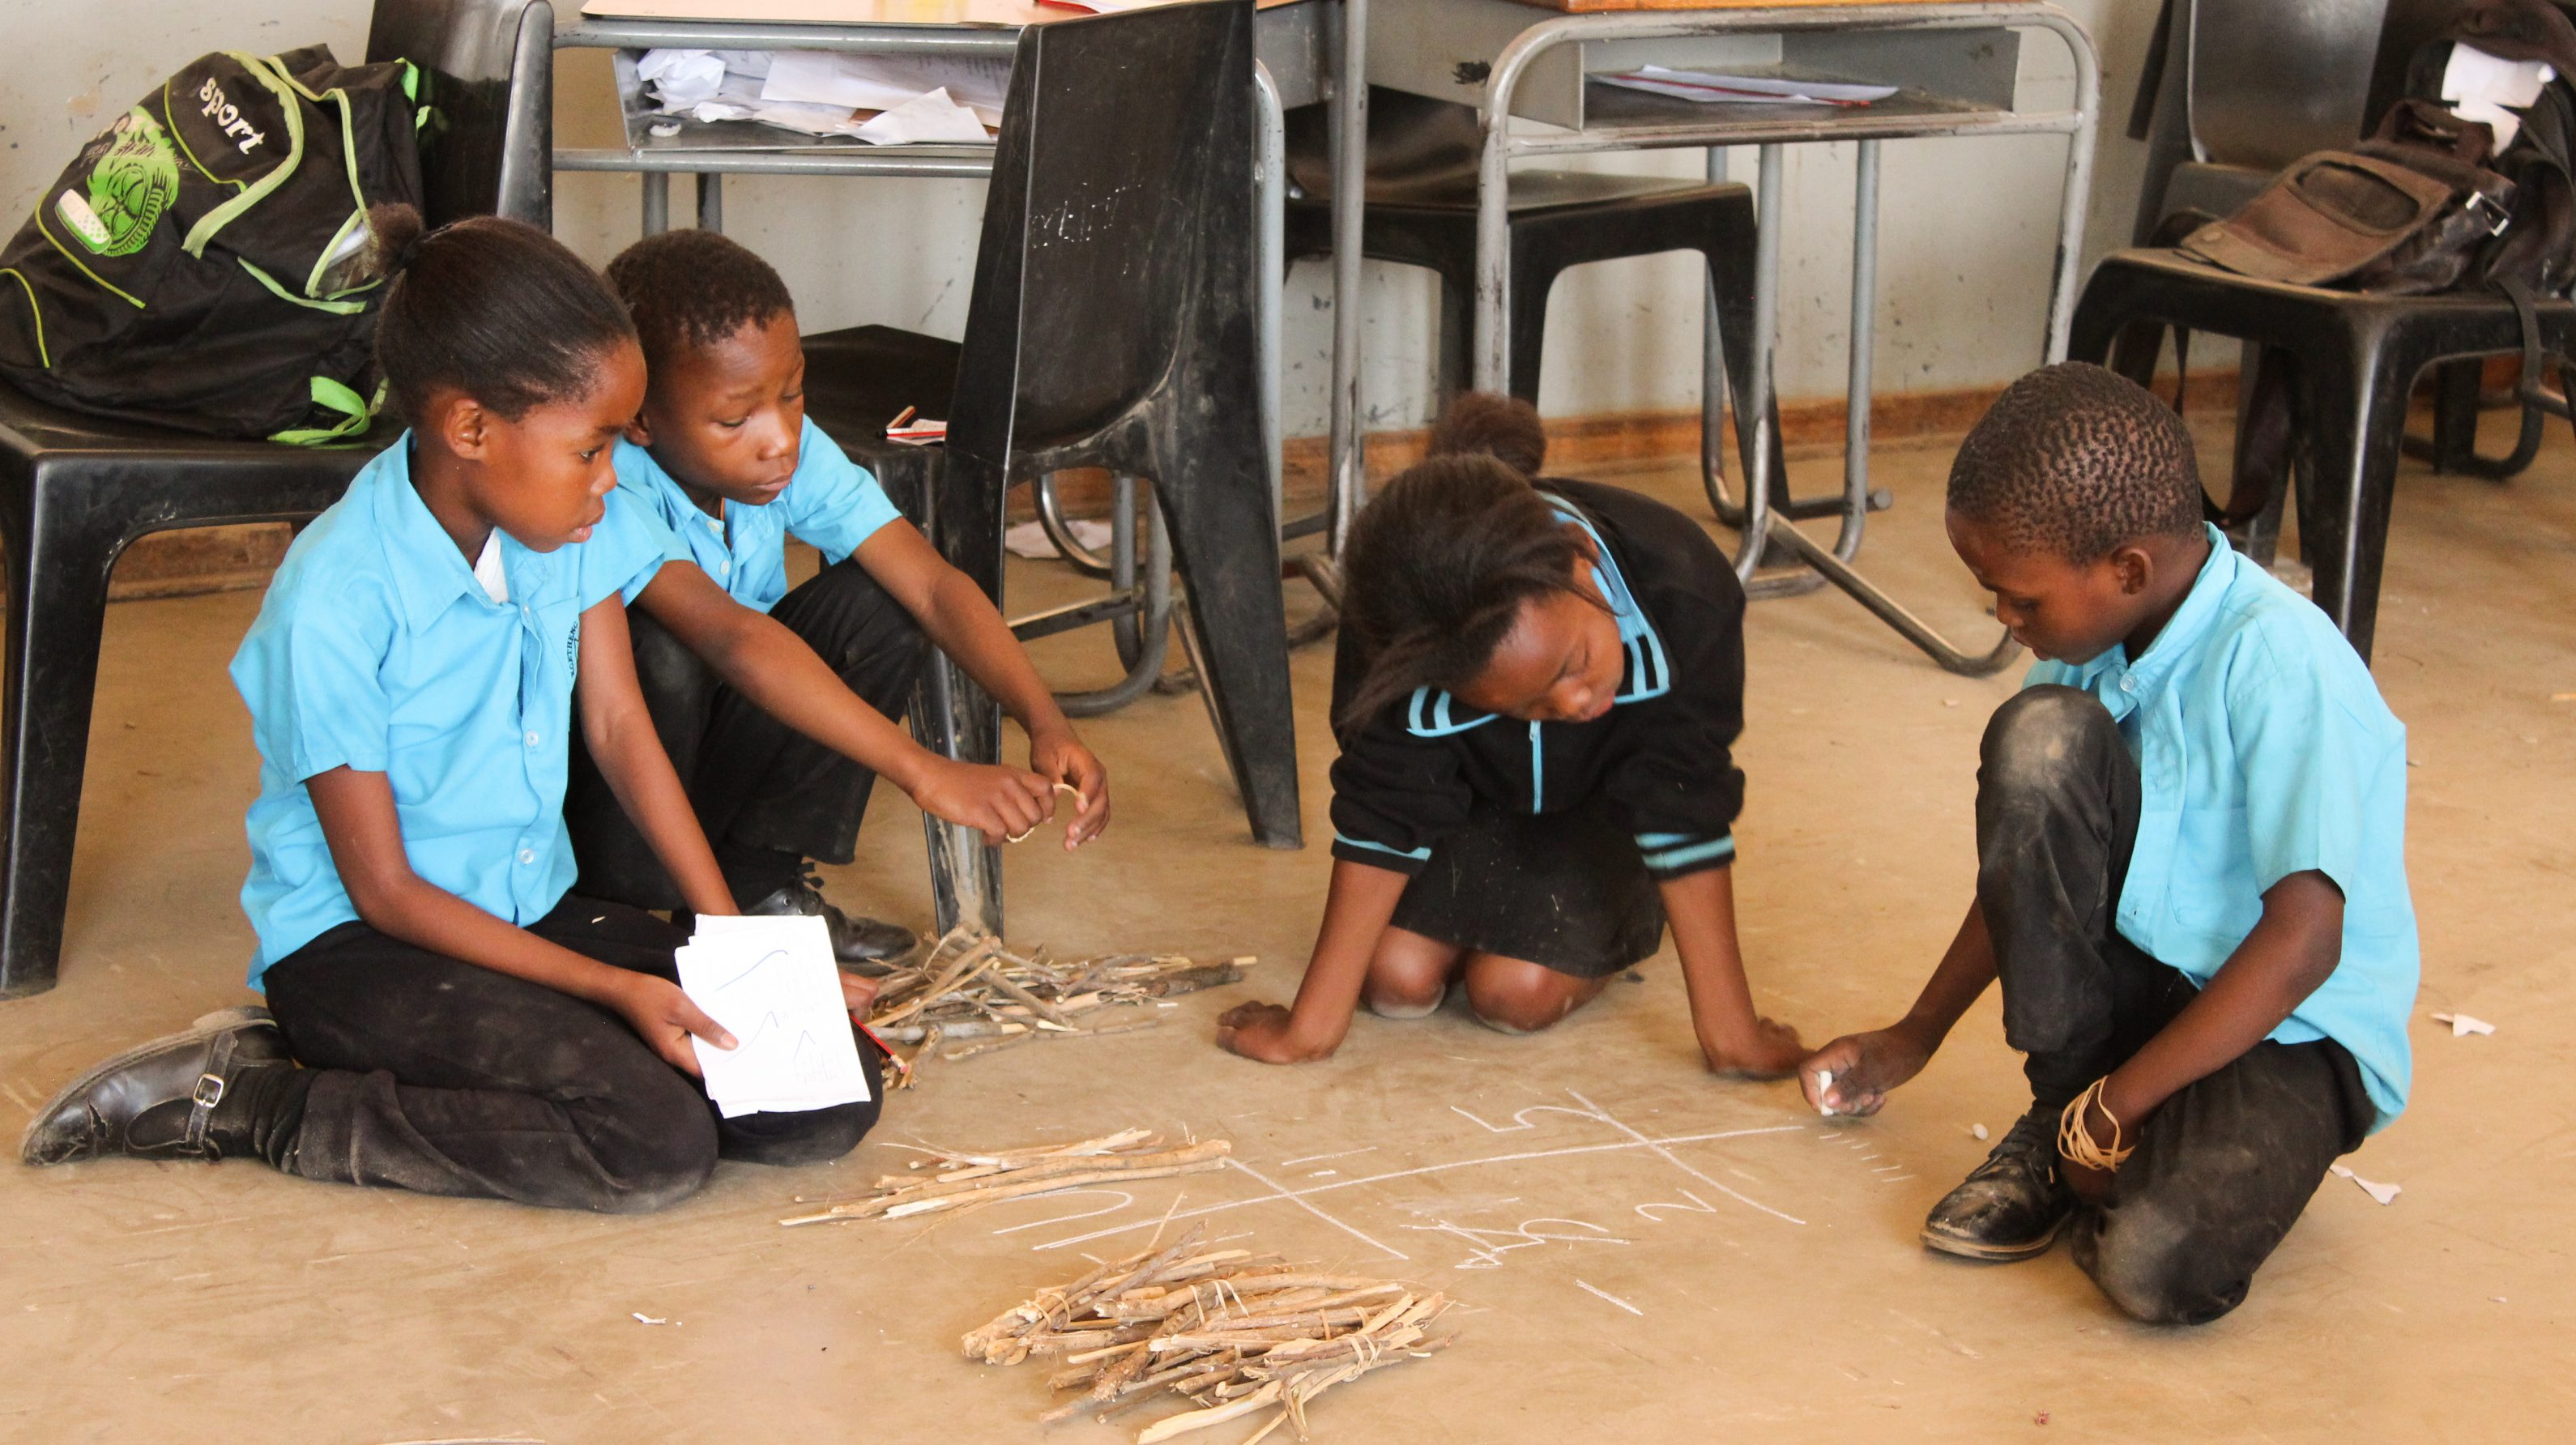 Three children watch as one child writes on the floor with chalk. Teaching at the Right Level materials (sticks tied in bundles) are on the floor next to them.